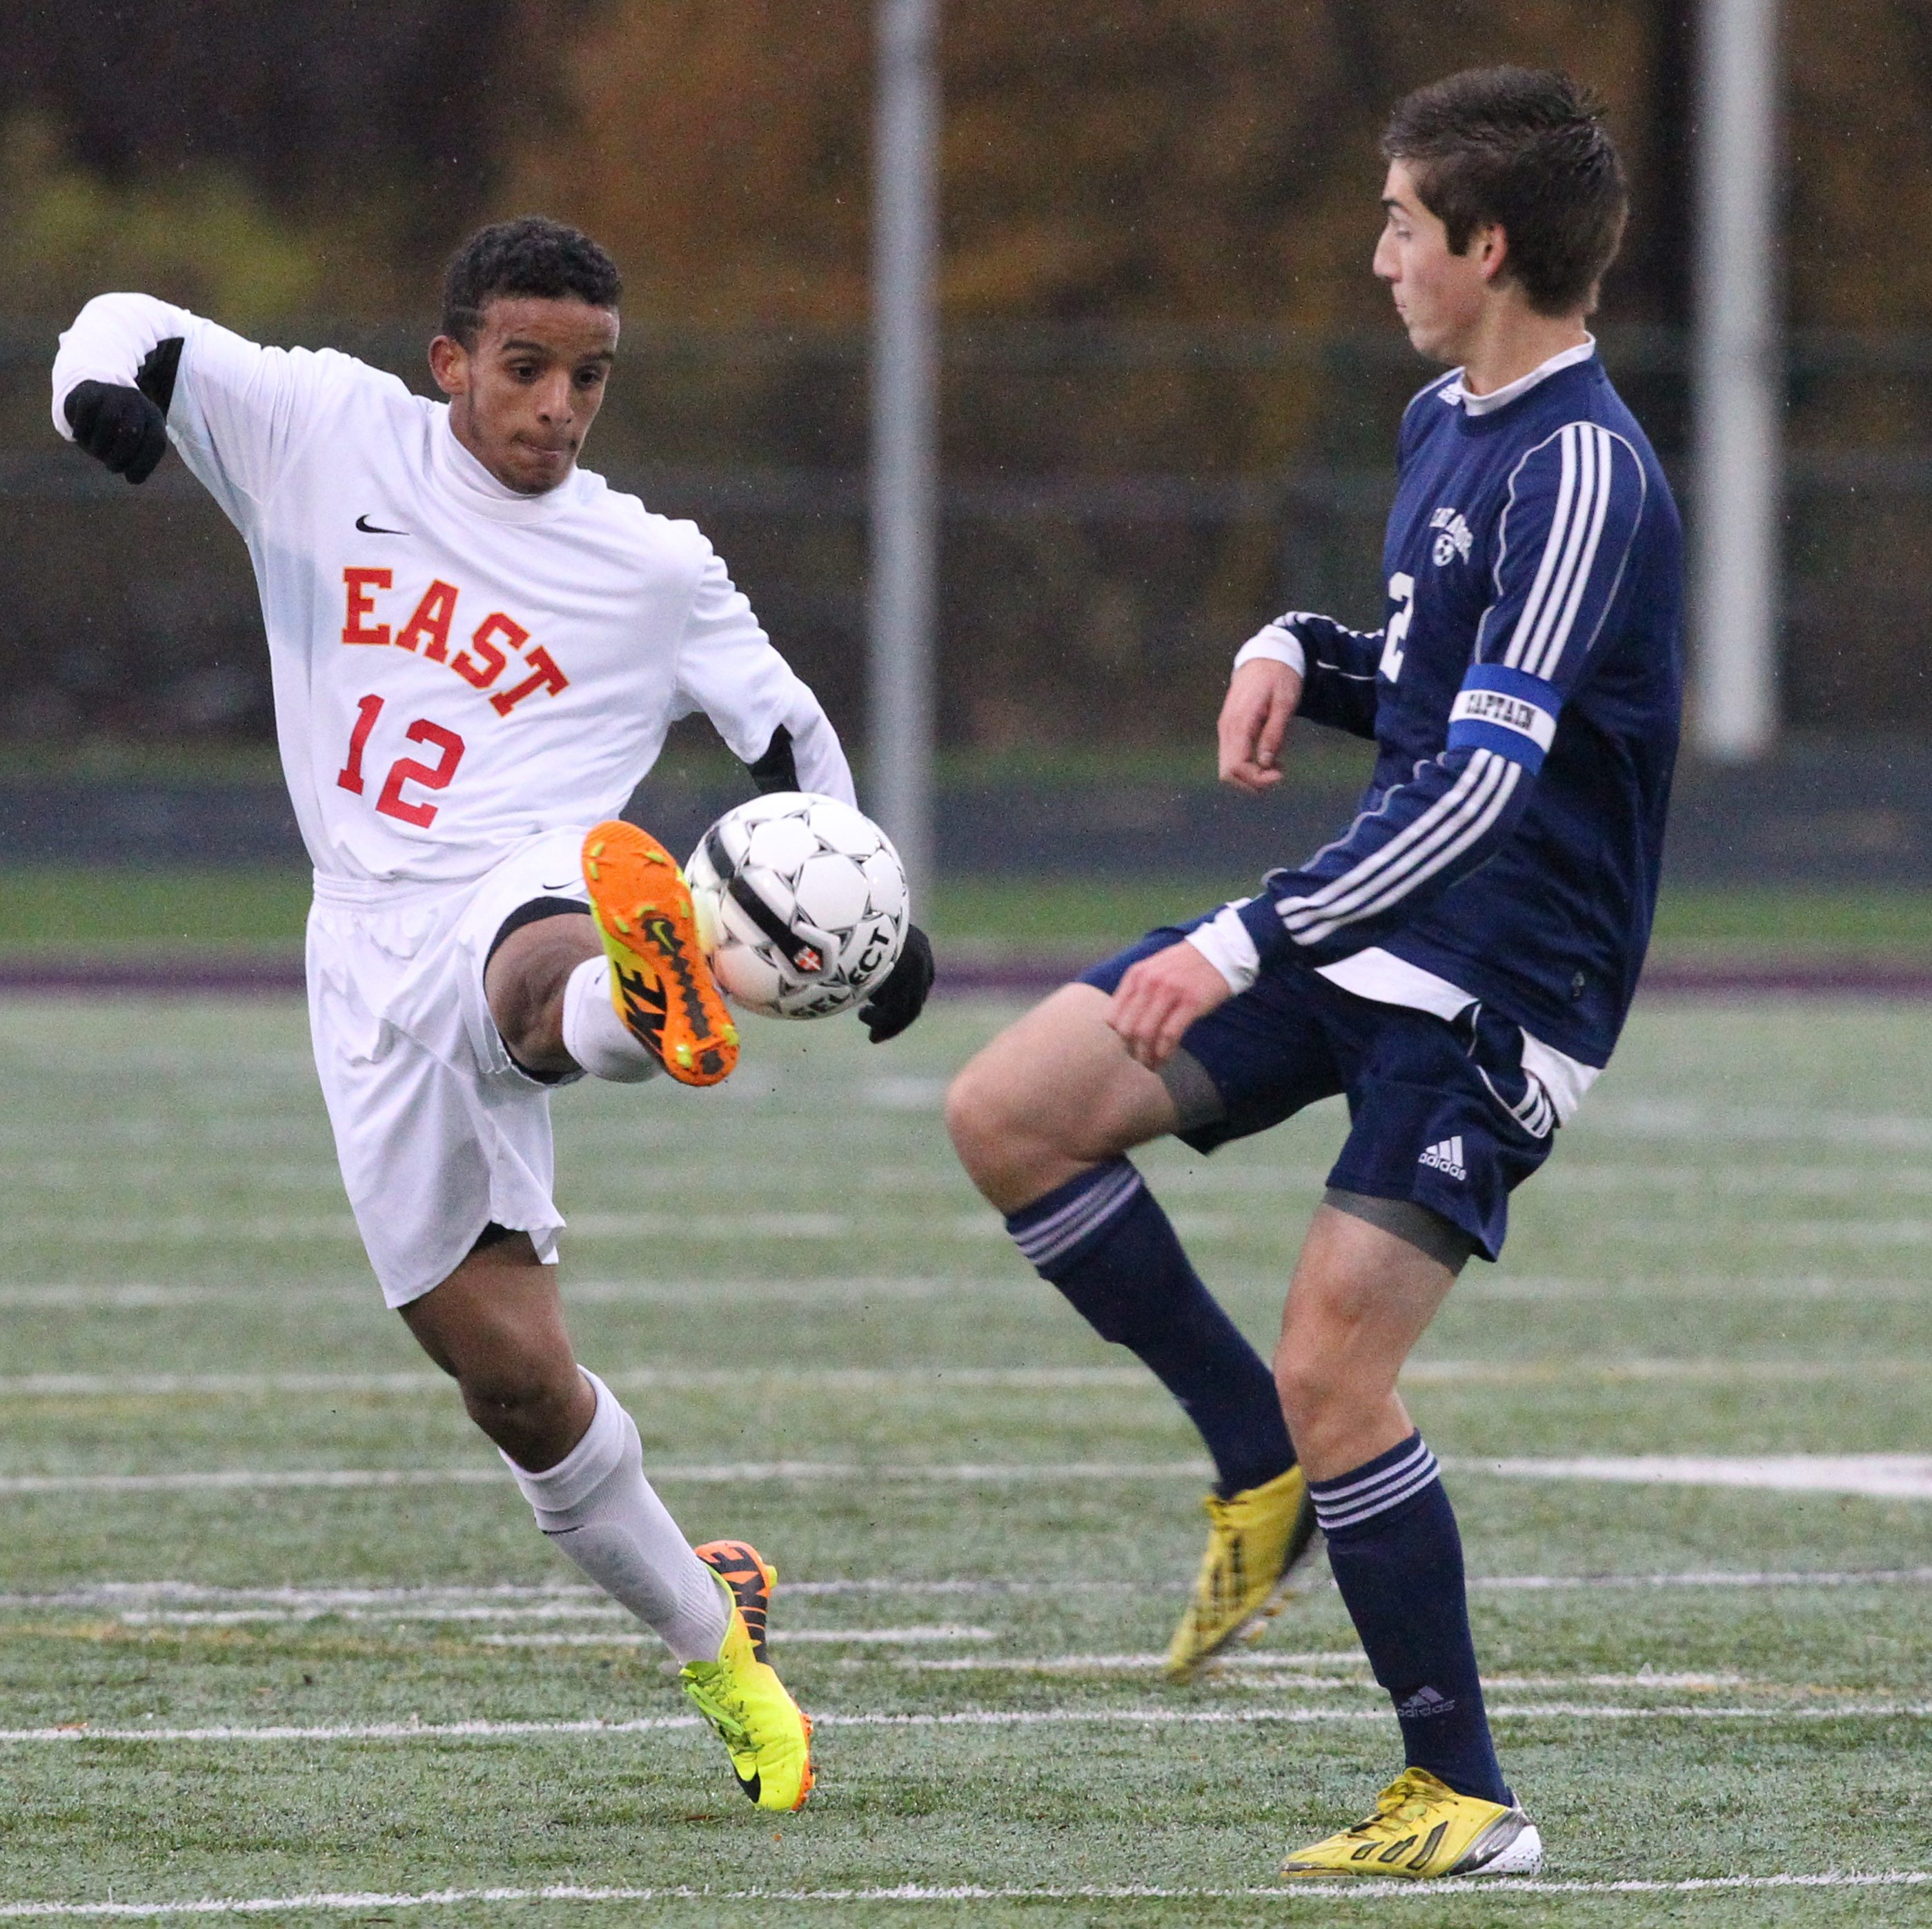 Williamsville East's Adam Ahmed battles East Aurora's Sean Kishel for the ball in the first half in the A game at Hamburg High School Saturday.